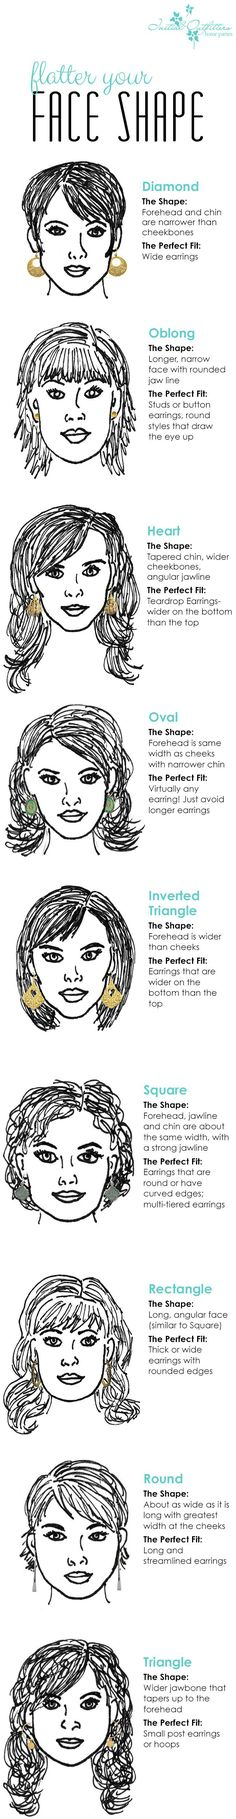 How to choose perfect earrings for your face